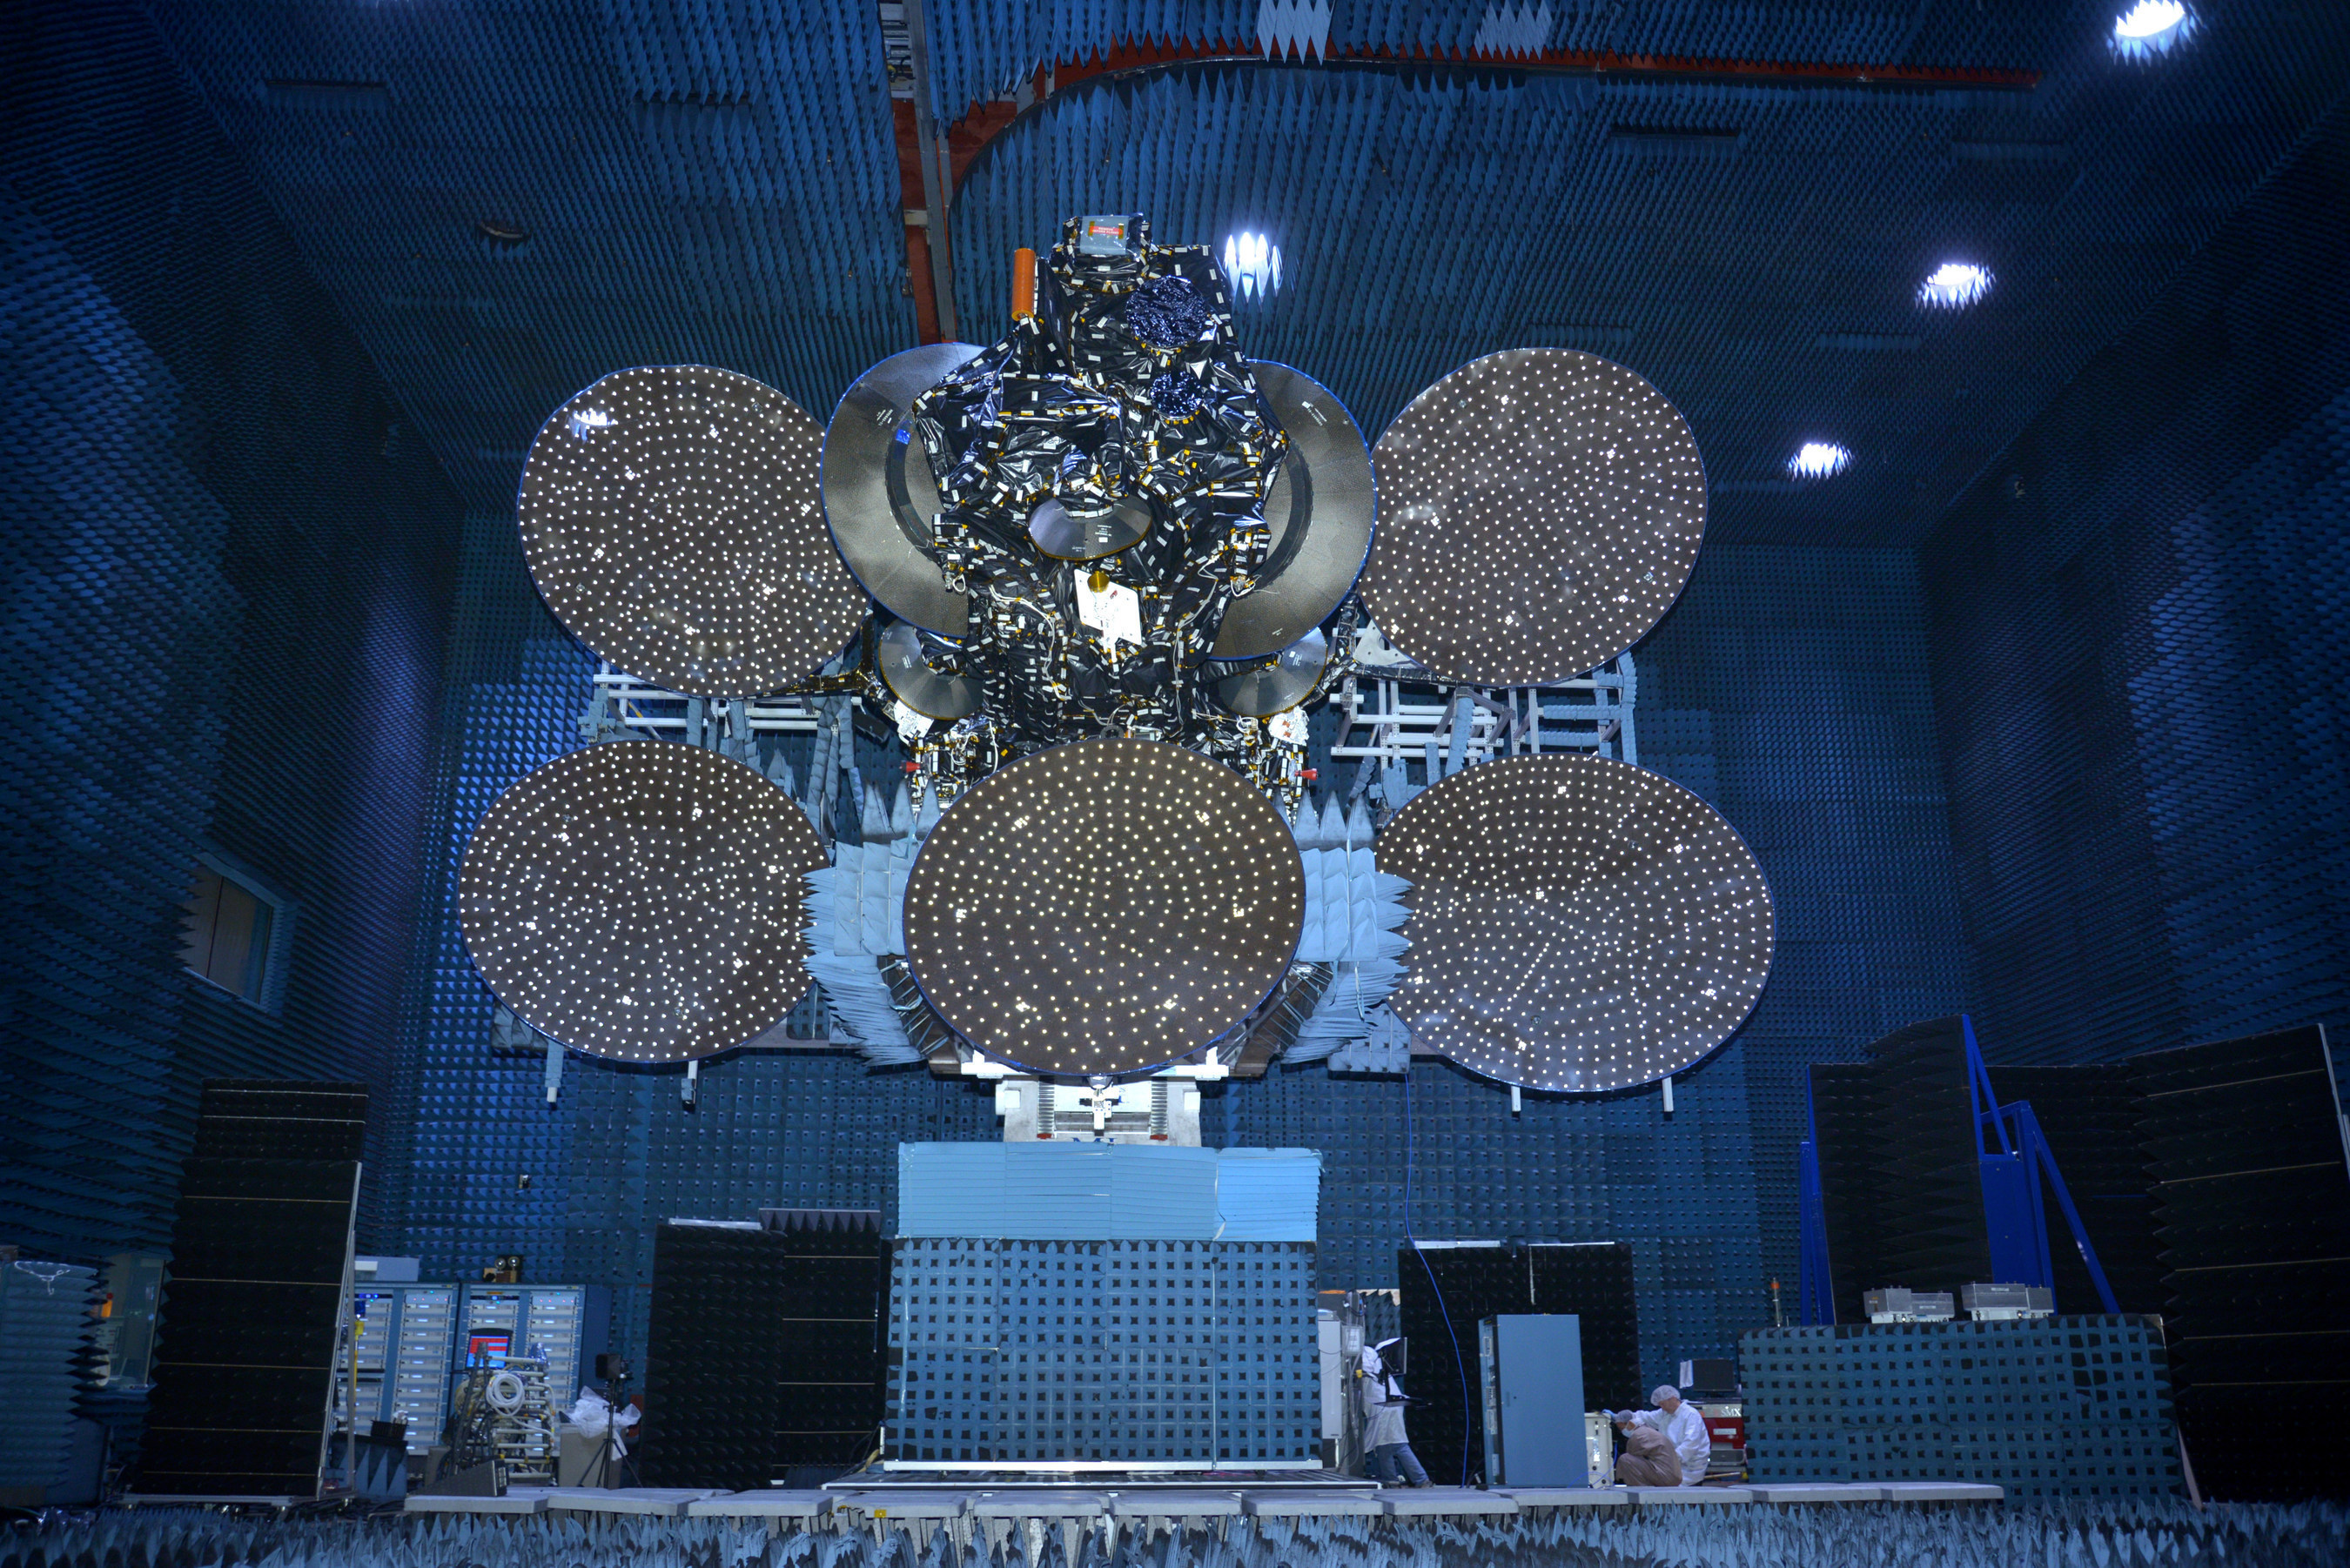 SSL Delivers Communications Satellite for SKY Perfect JSAT to Cape Canaveral Launch Base